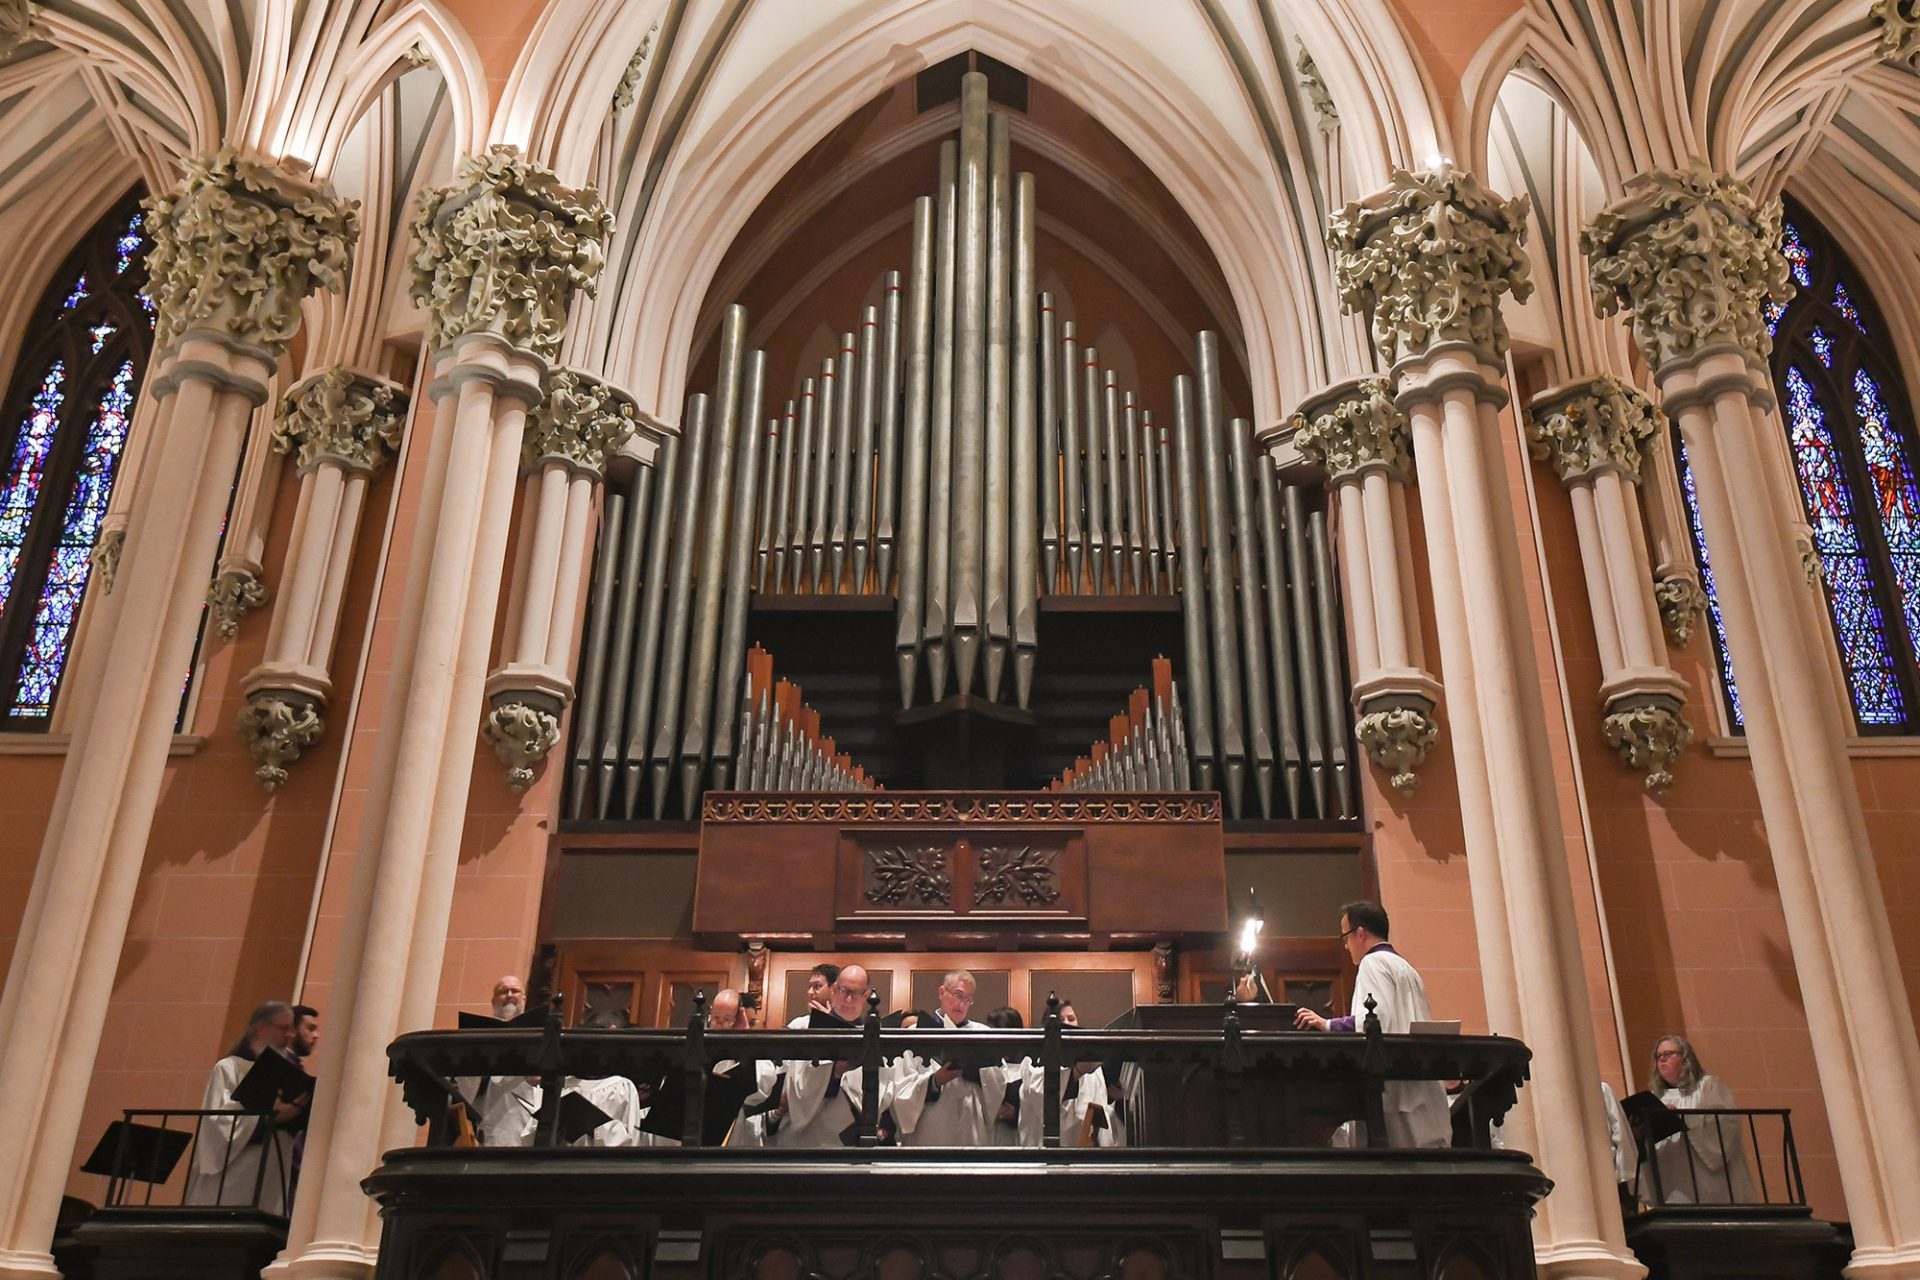 sanctuary-organ